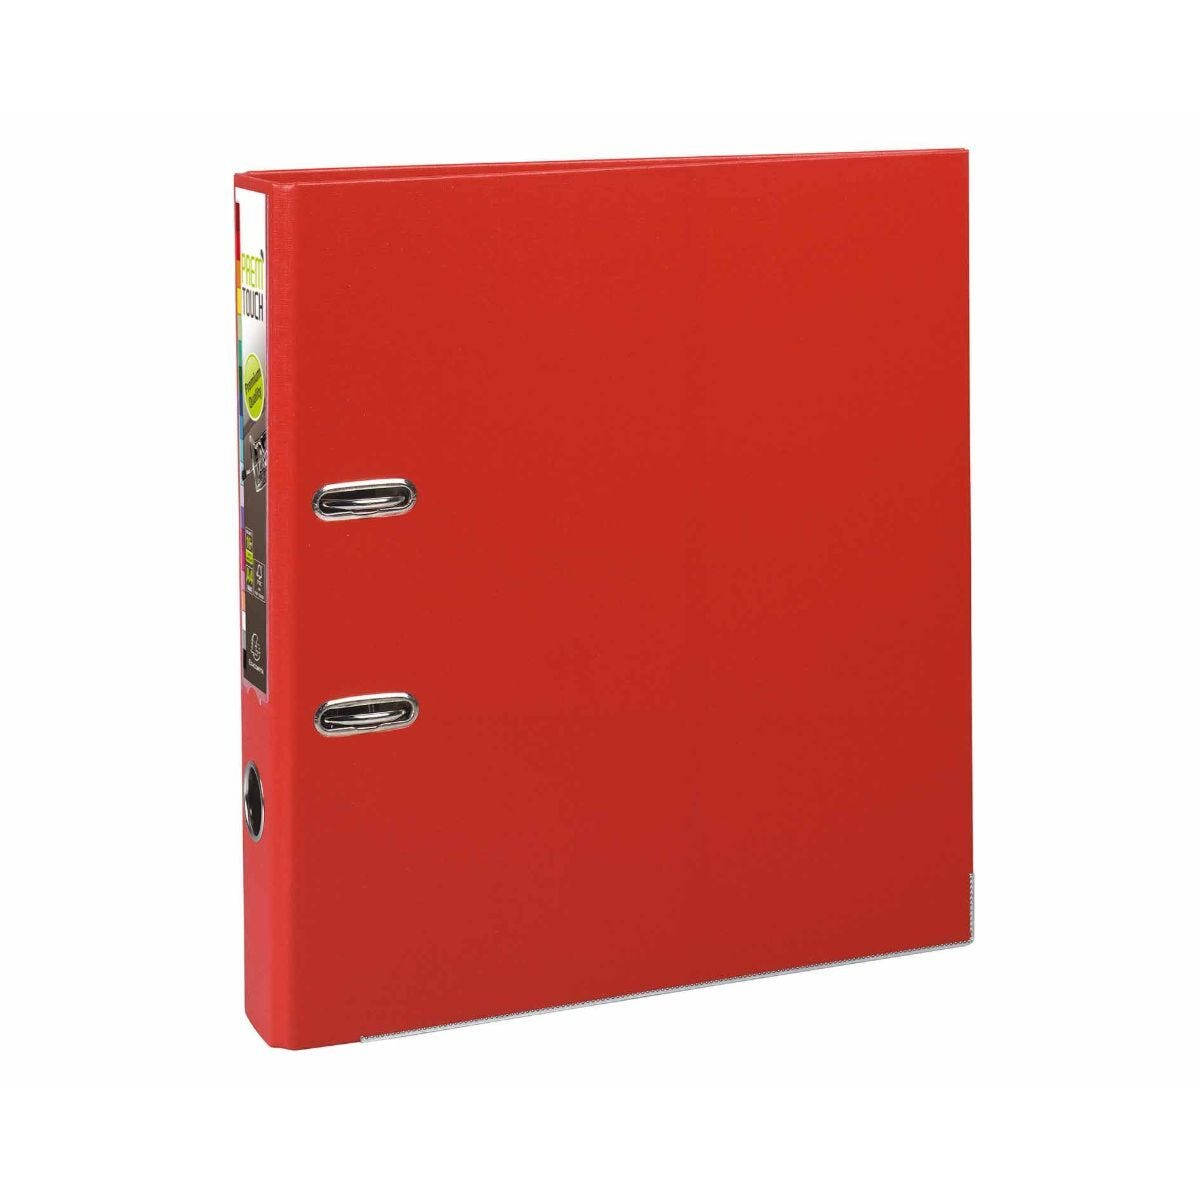 Exacompta PremTouch A4 Plus Lever Arch File 50mm Pack of 10 Red